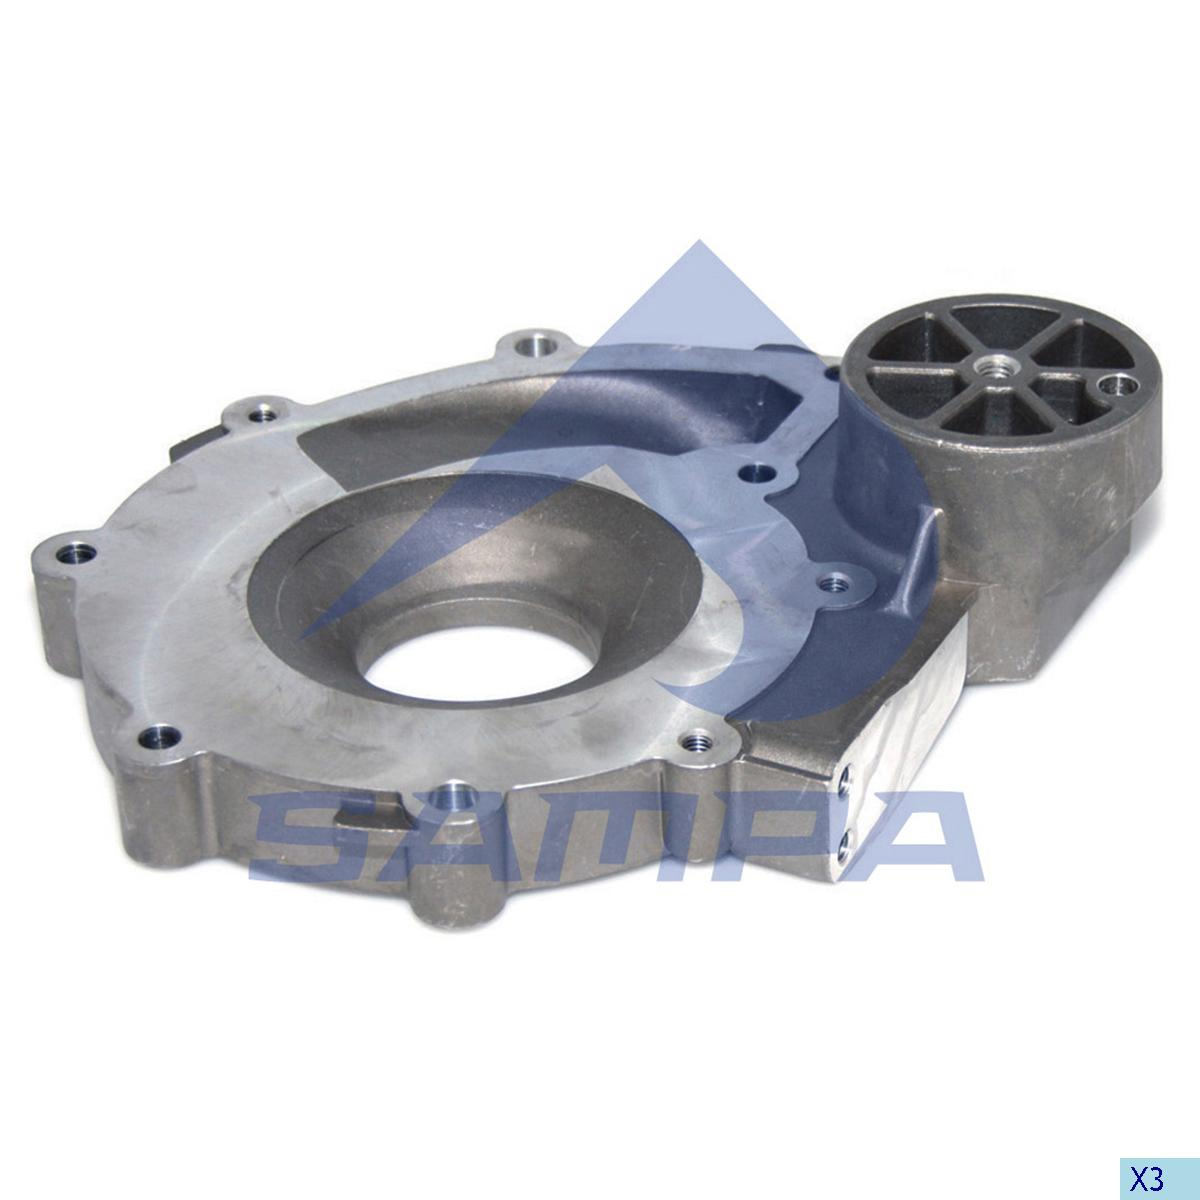 Housing, Water Pump, Scania, Engine